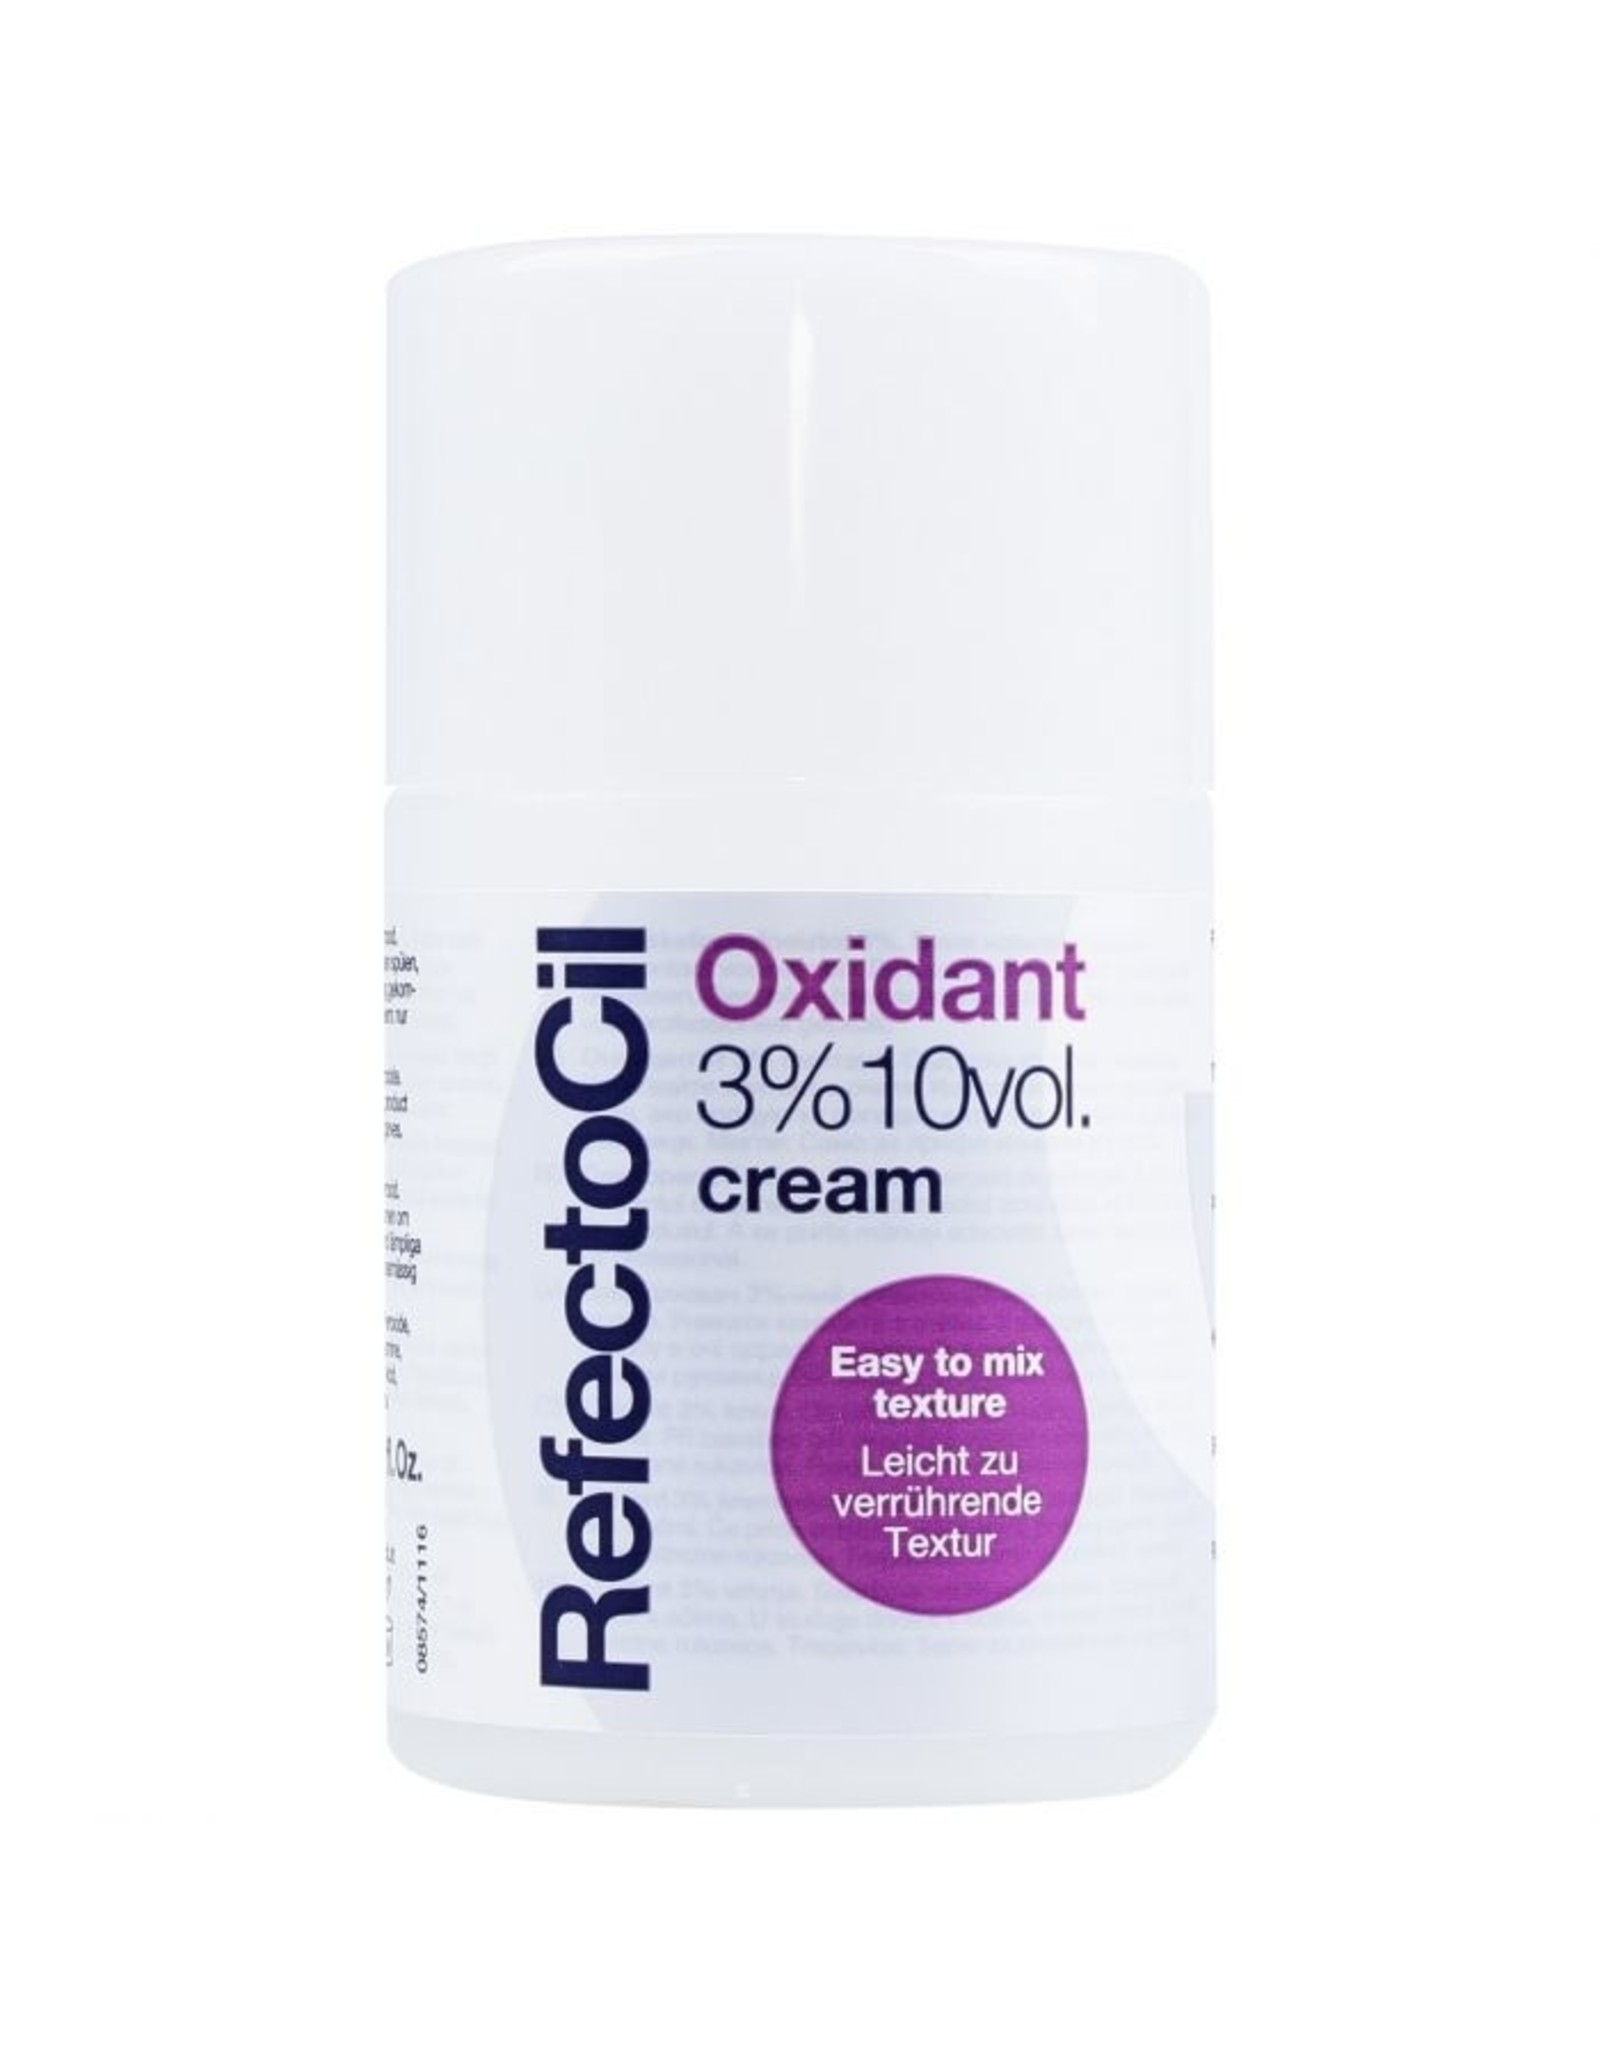 Mega Beauty Shop® RefectoCil - Oxidant 3% creme - 100 ml